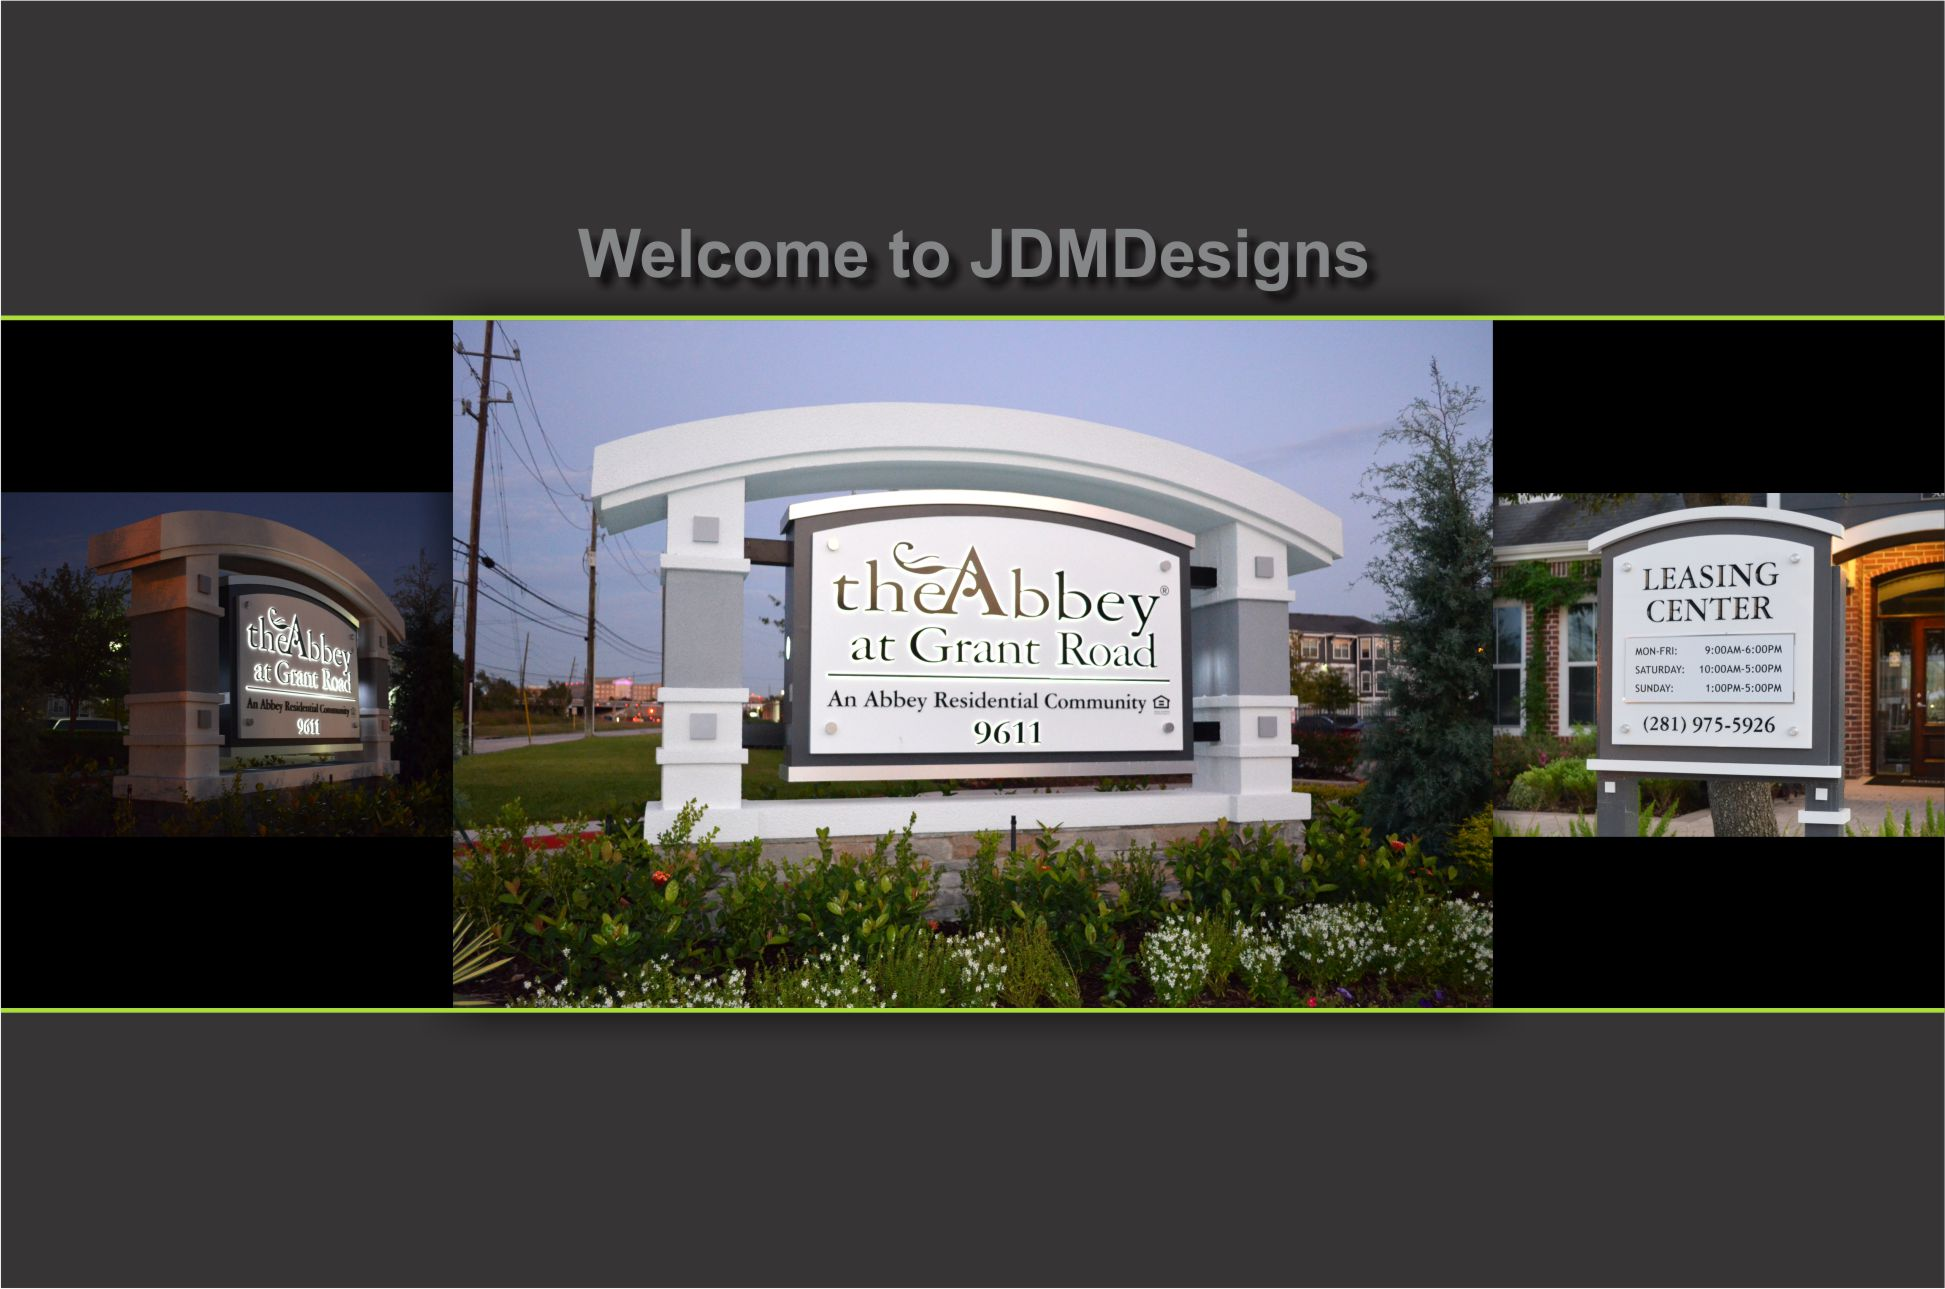 Welcome to JDMDesigns